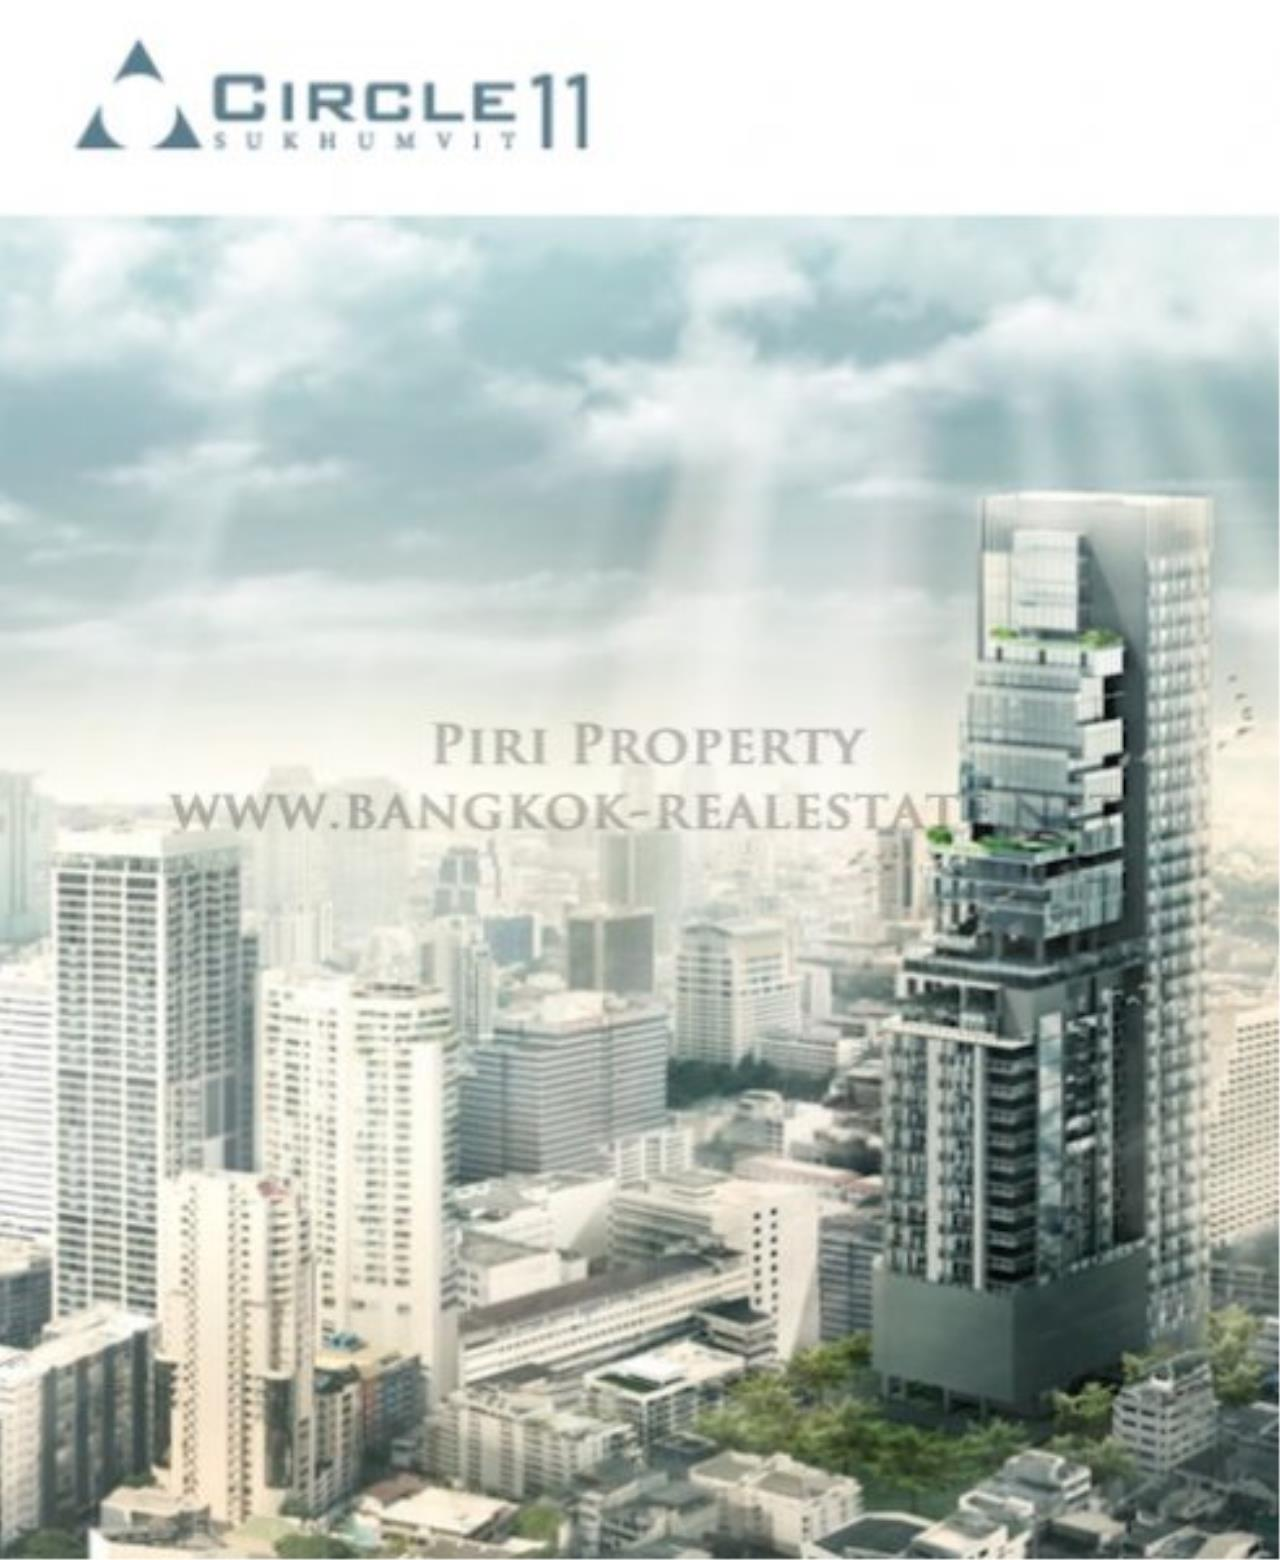 Piri Property Agency's Circle 11 Condo for Sale - 1 Bedroom on 17th Floor 1